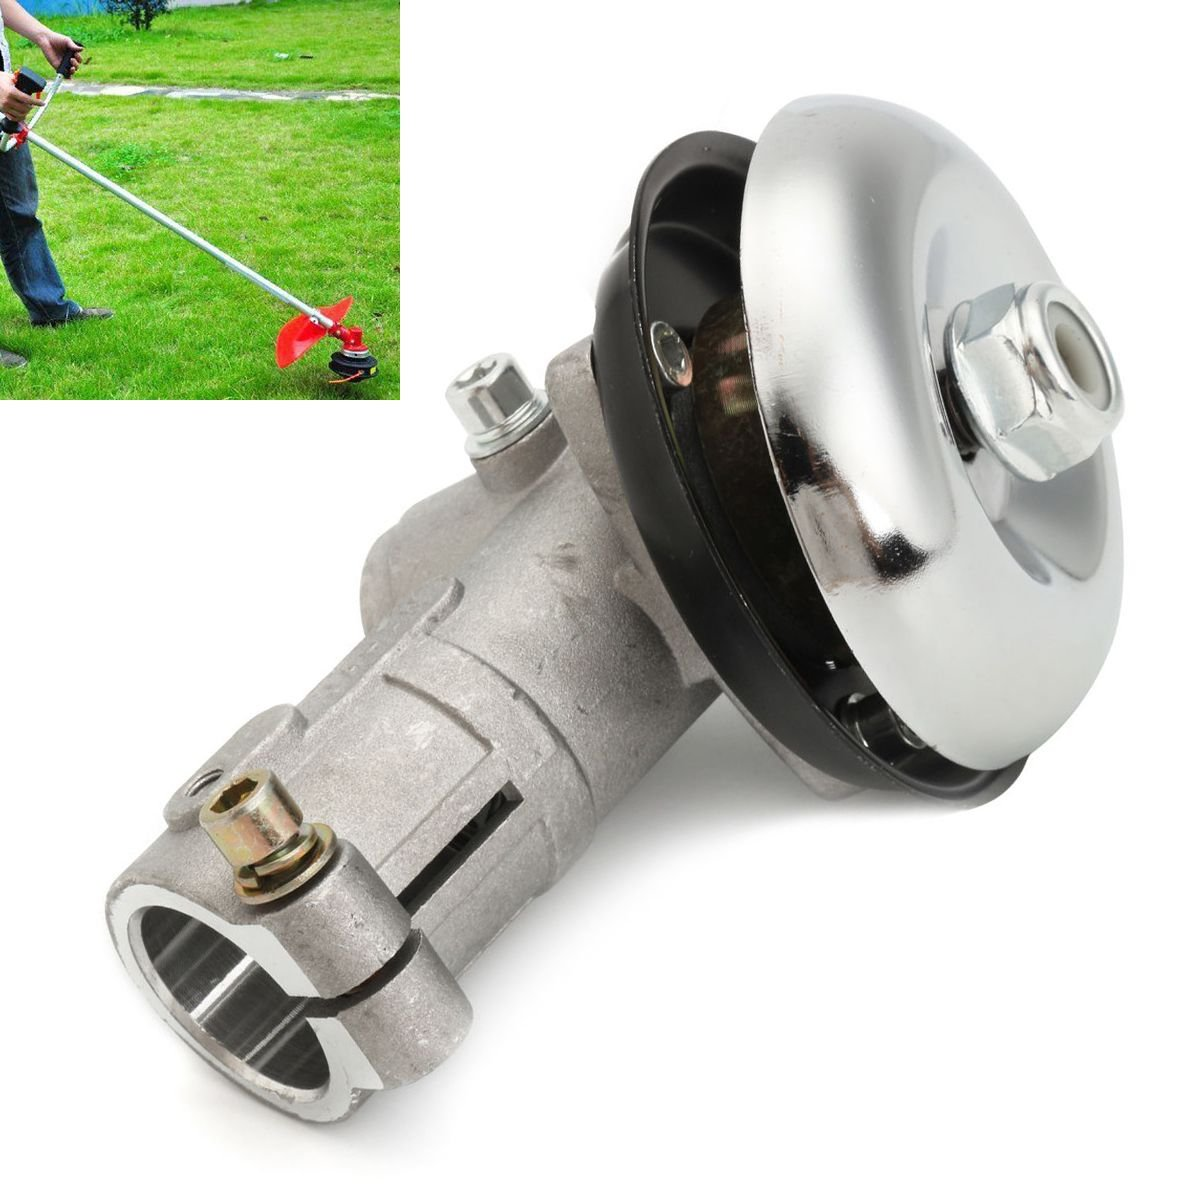 ERTIANANG Mayitr 26mm 7 Tooth Splin Gearhead Gearbox for Trimmer Strimmer Brush Cutter Lawnmower Garden Tools